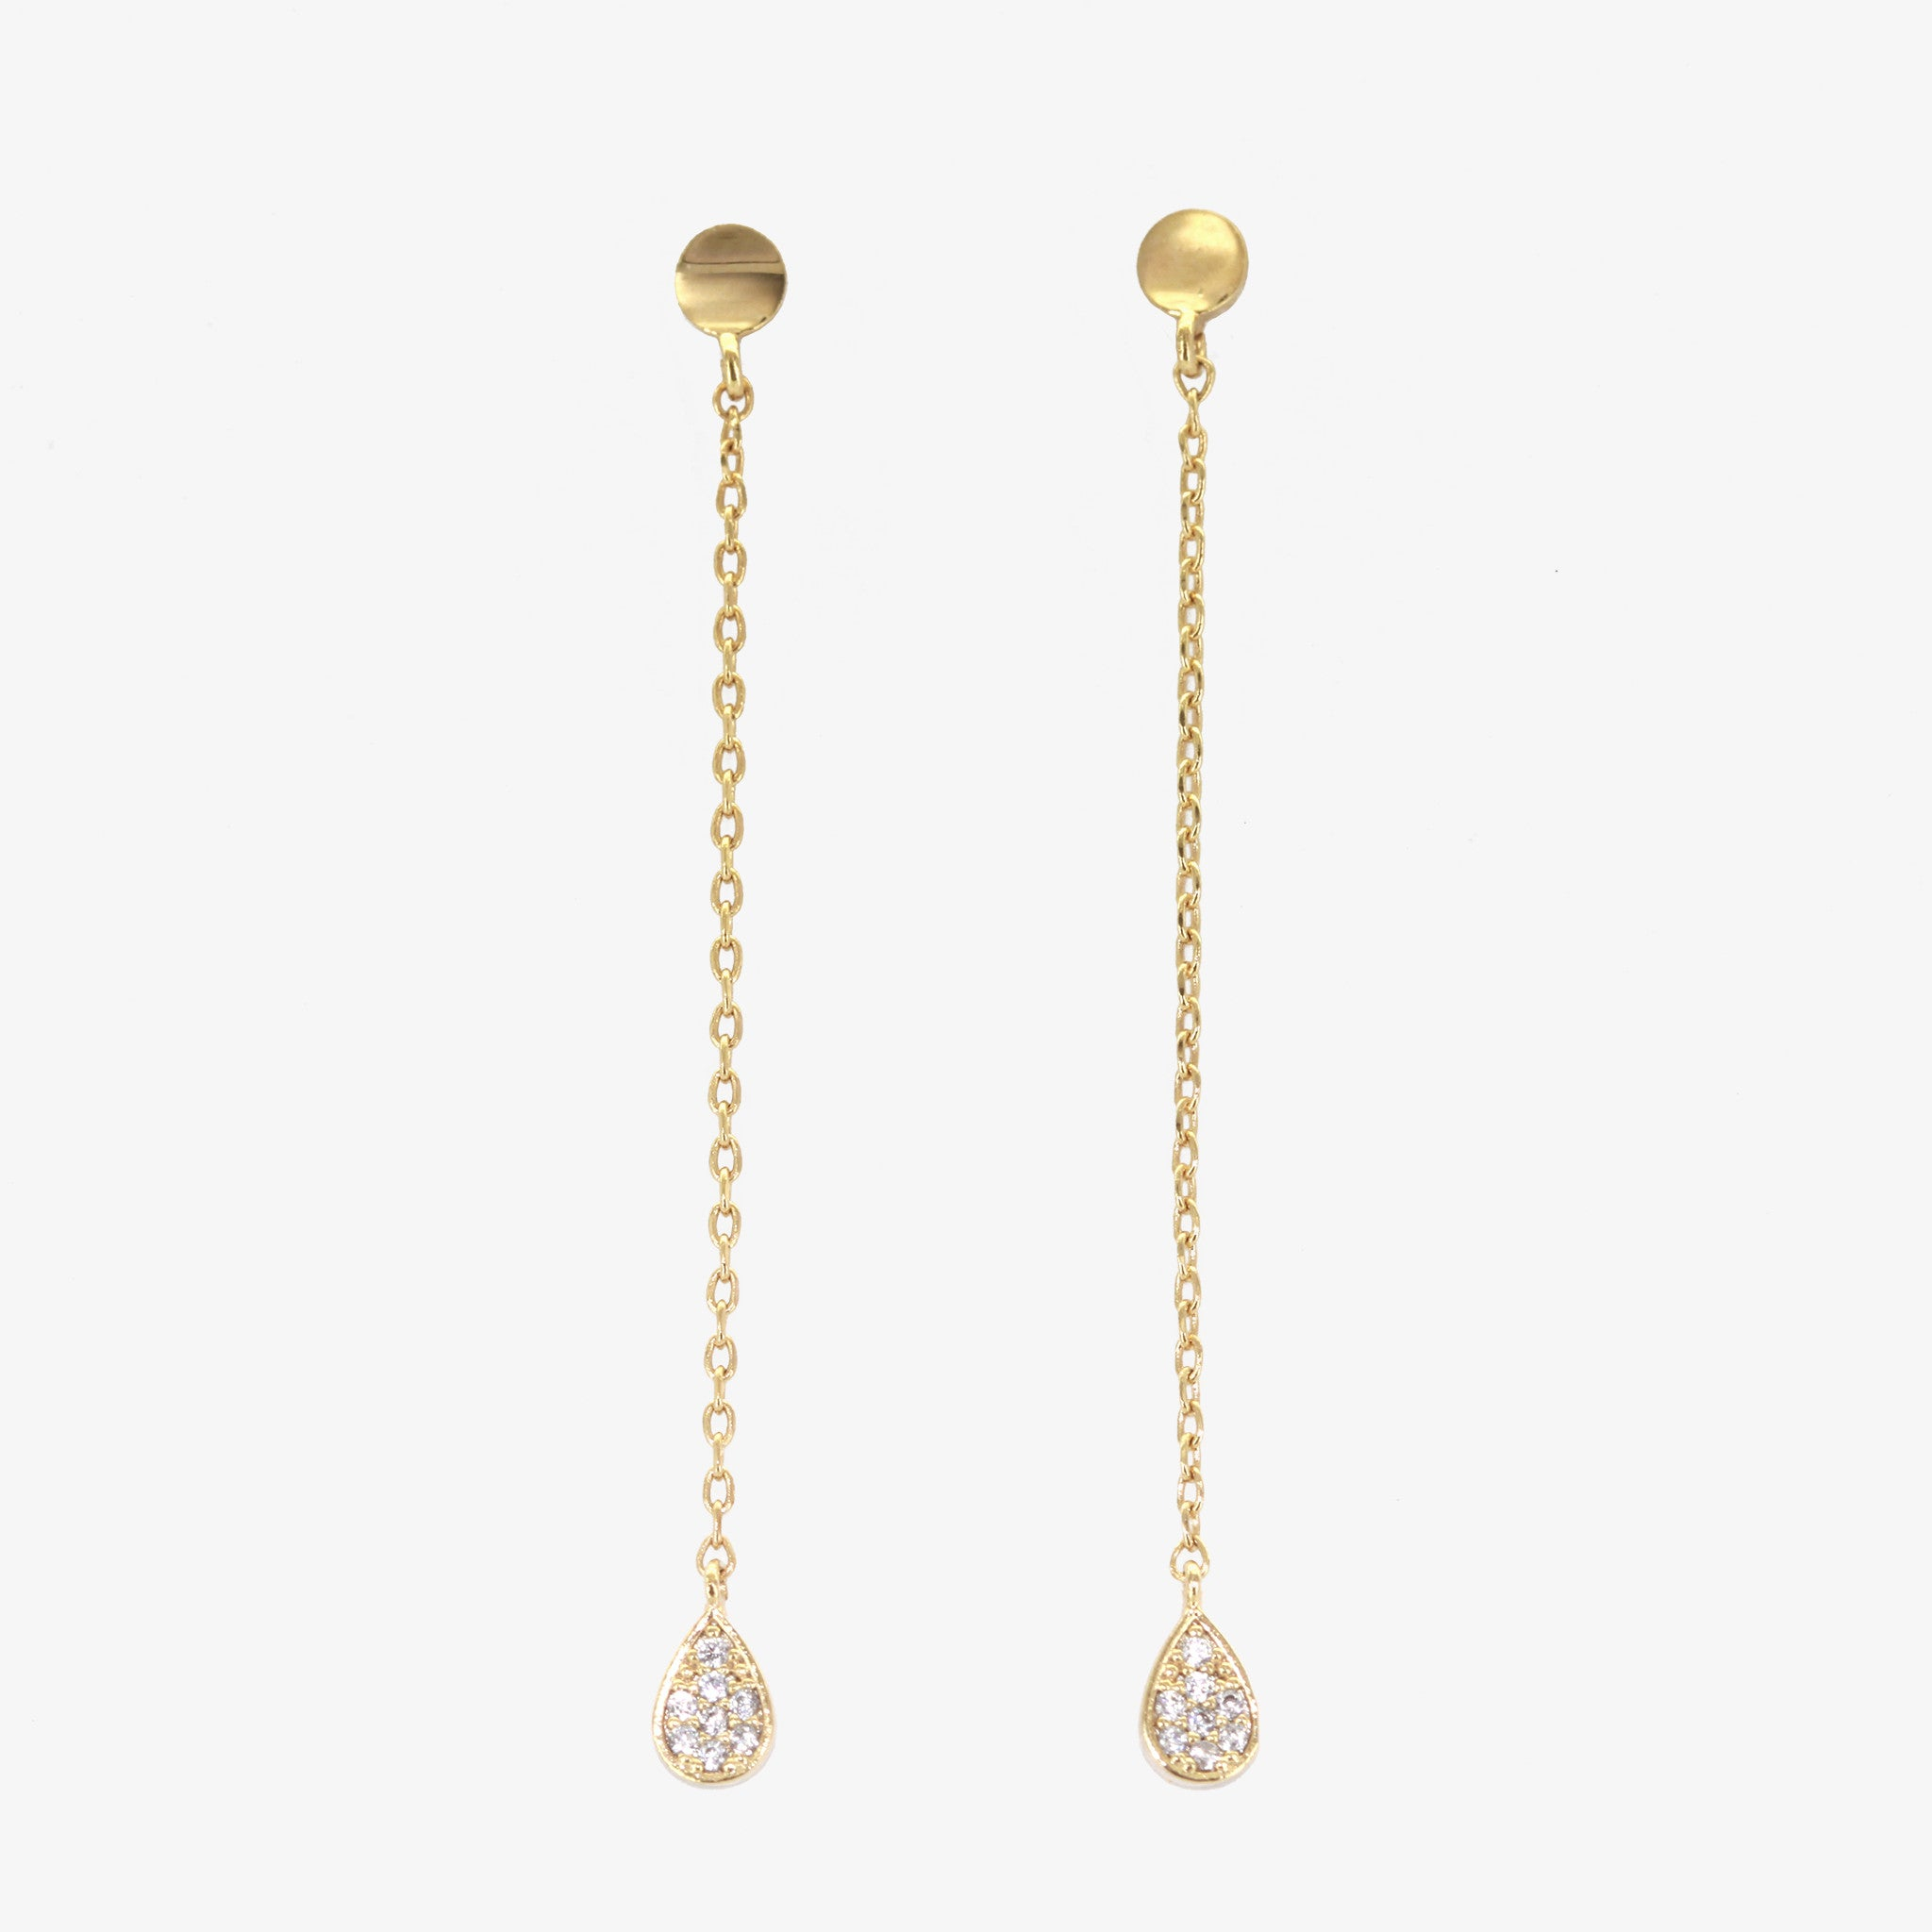 Chloe Teardrop Earrings